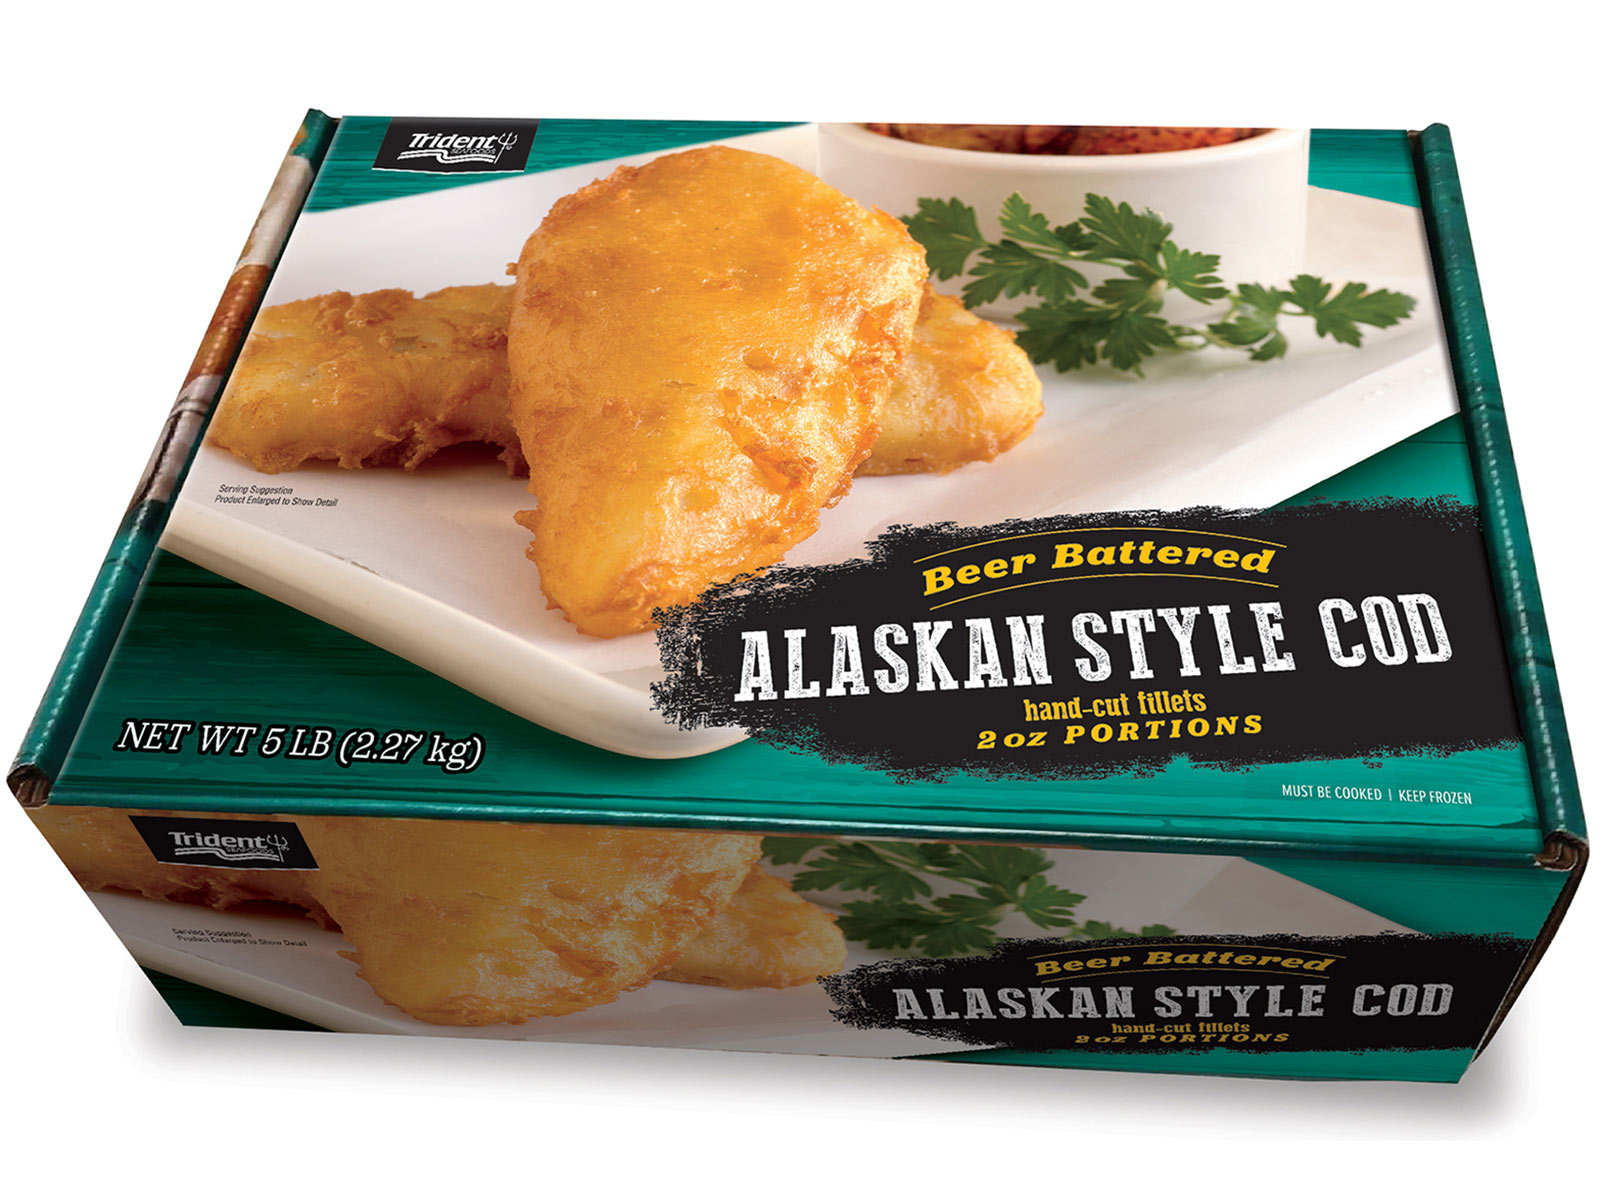 Alaskan Style Cod Beer Battered 2 oz (1/5 lb) 423077